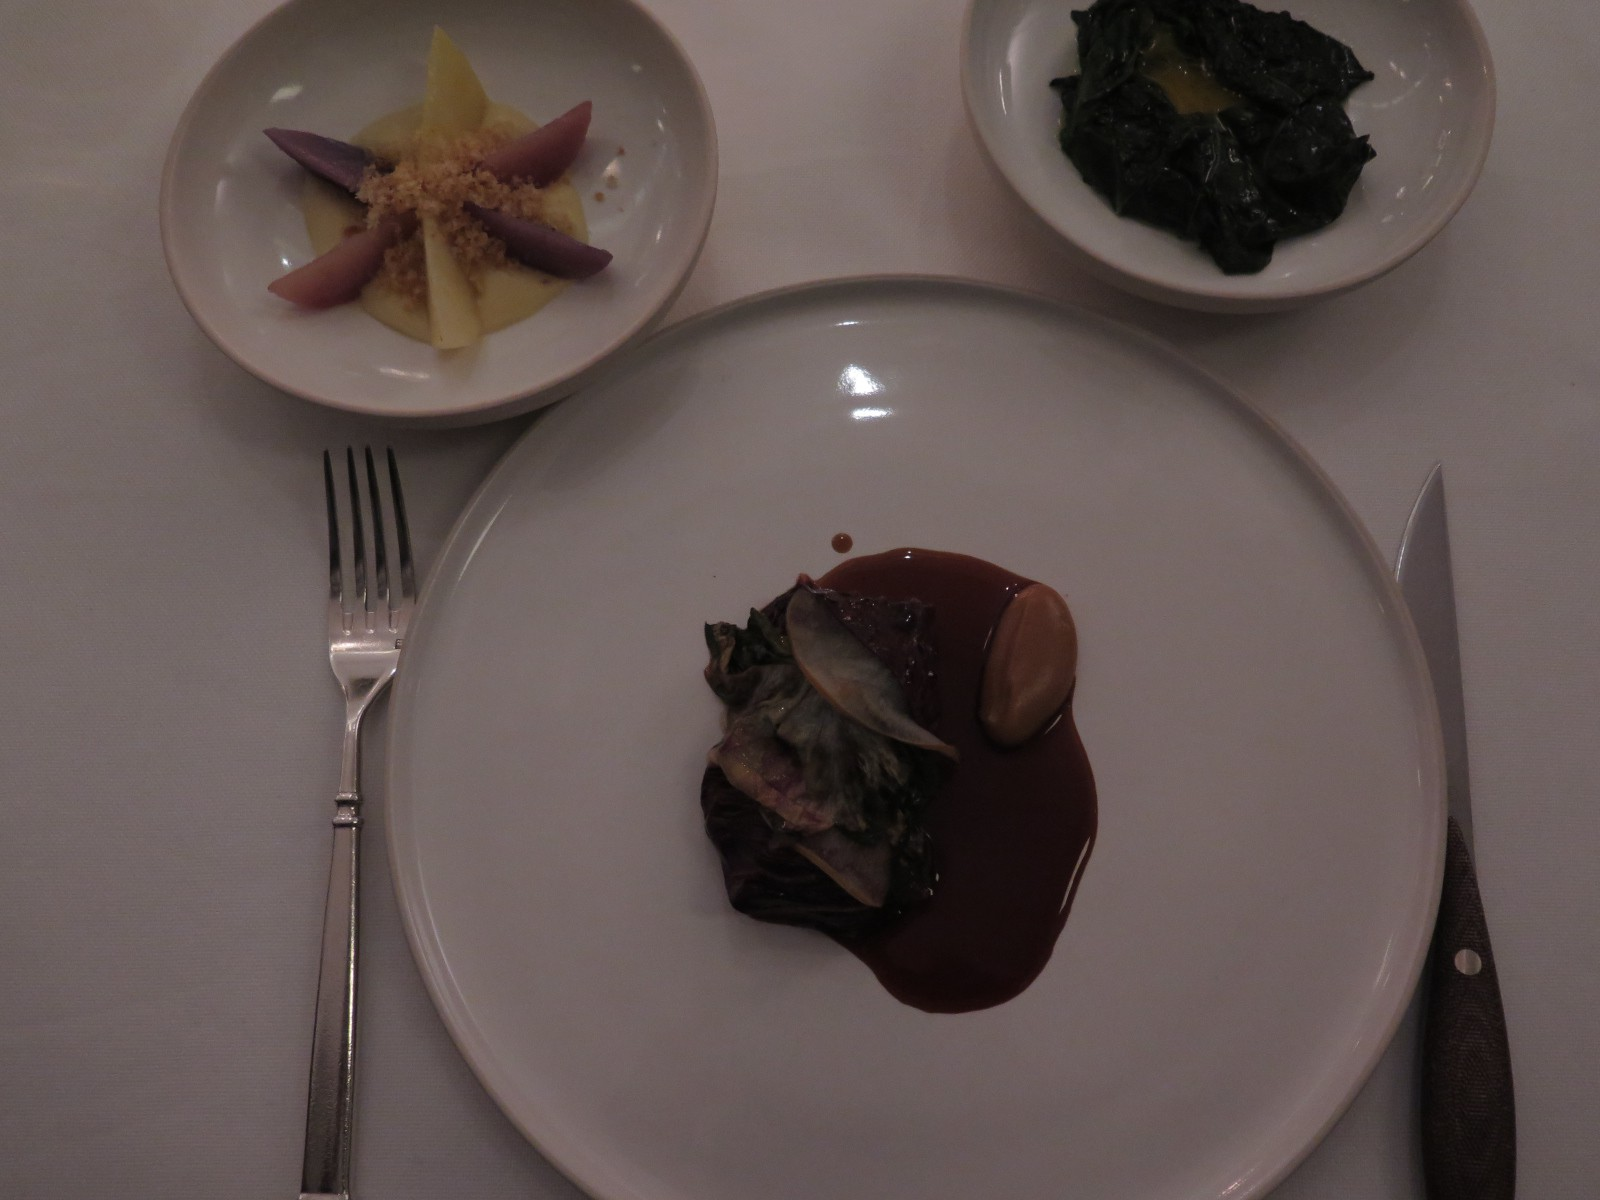 VEAL Dry-Aged with Bitters Greens and Shallot + POTATO Confit, Puree and Crumble + KALE with Pearl Onion and Farm Egg